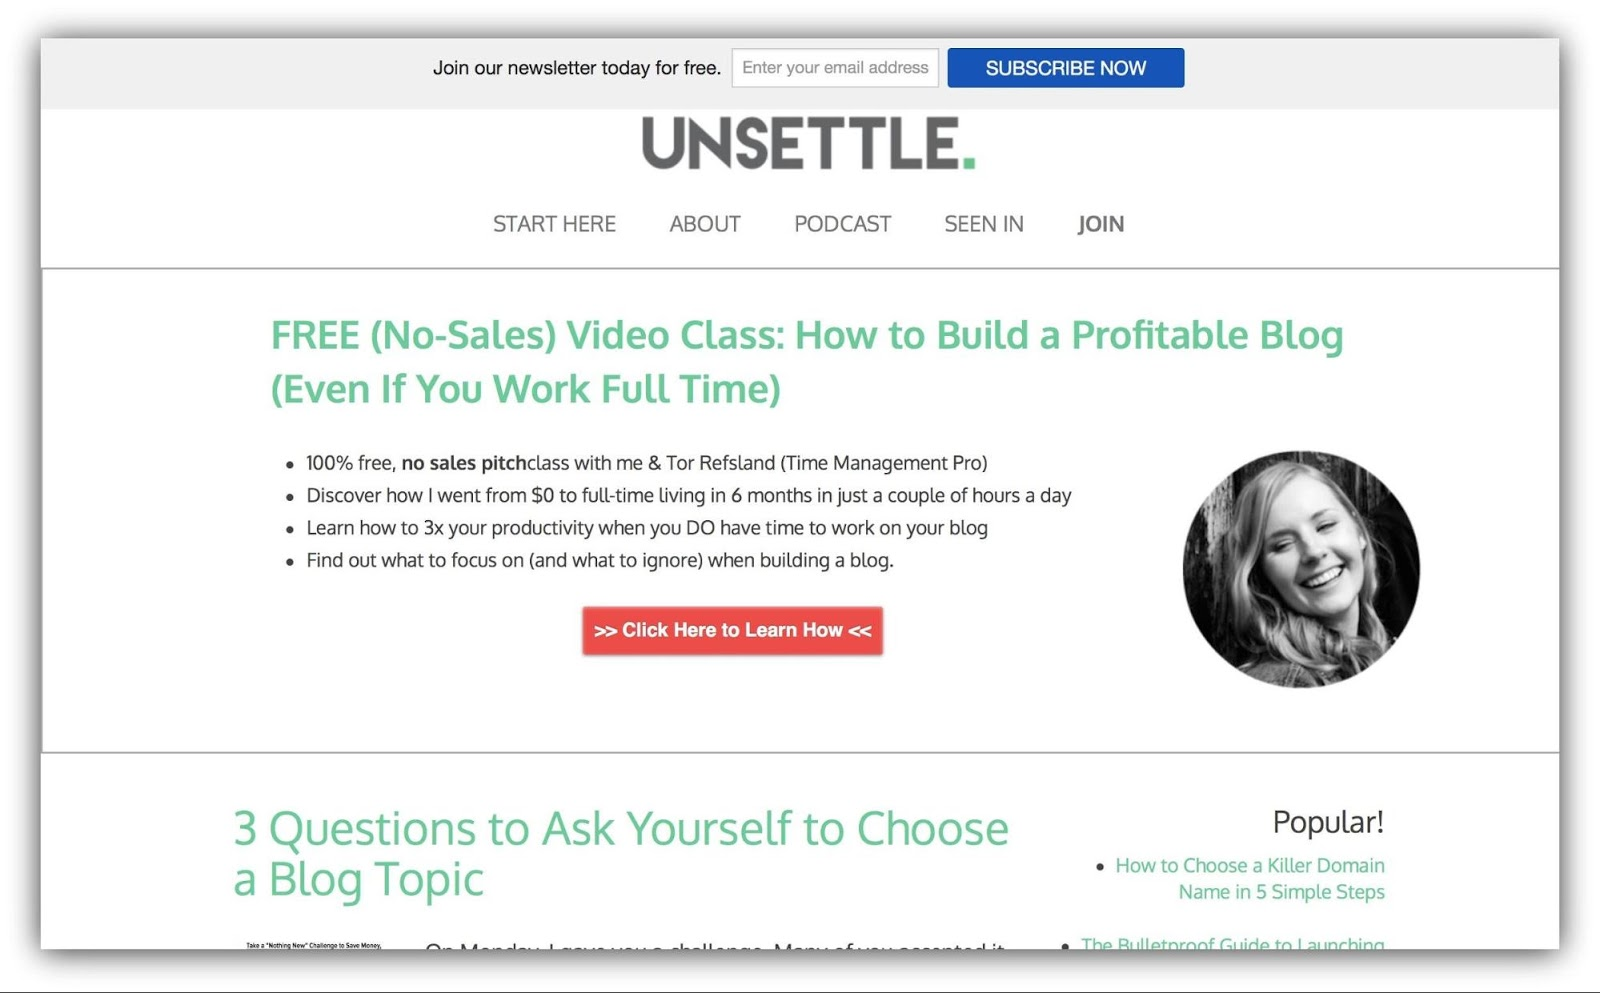 Screenshot showing content on Unsettle